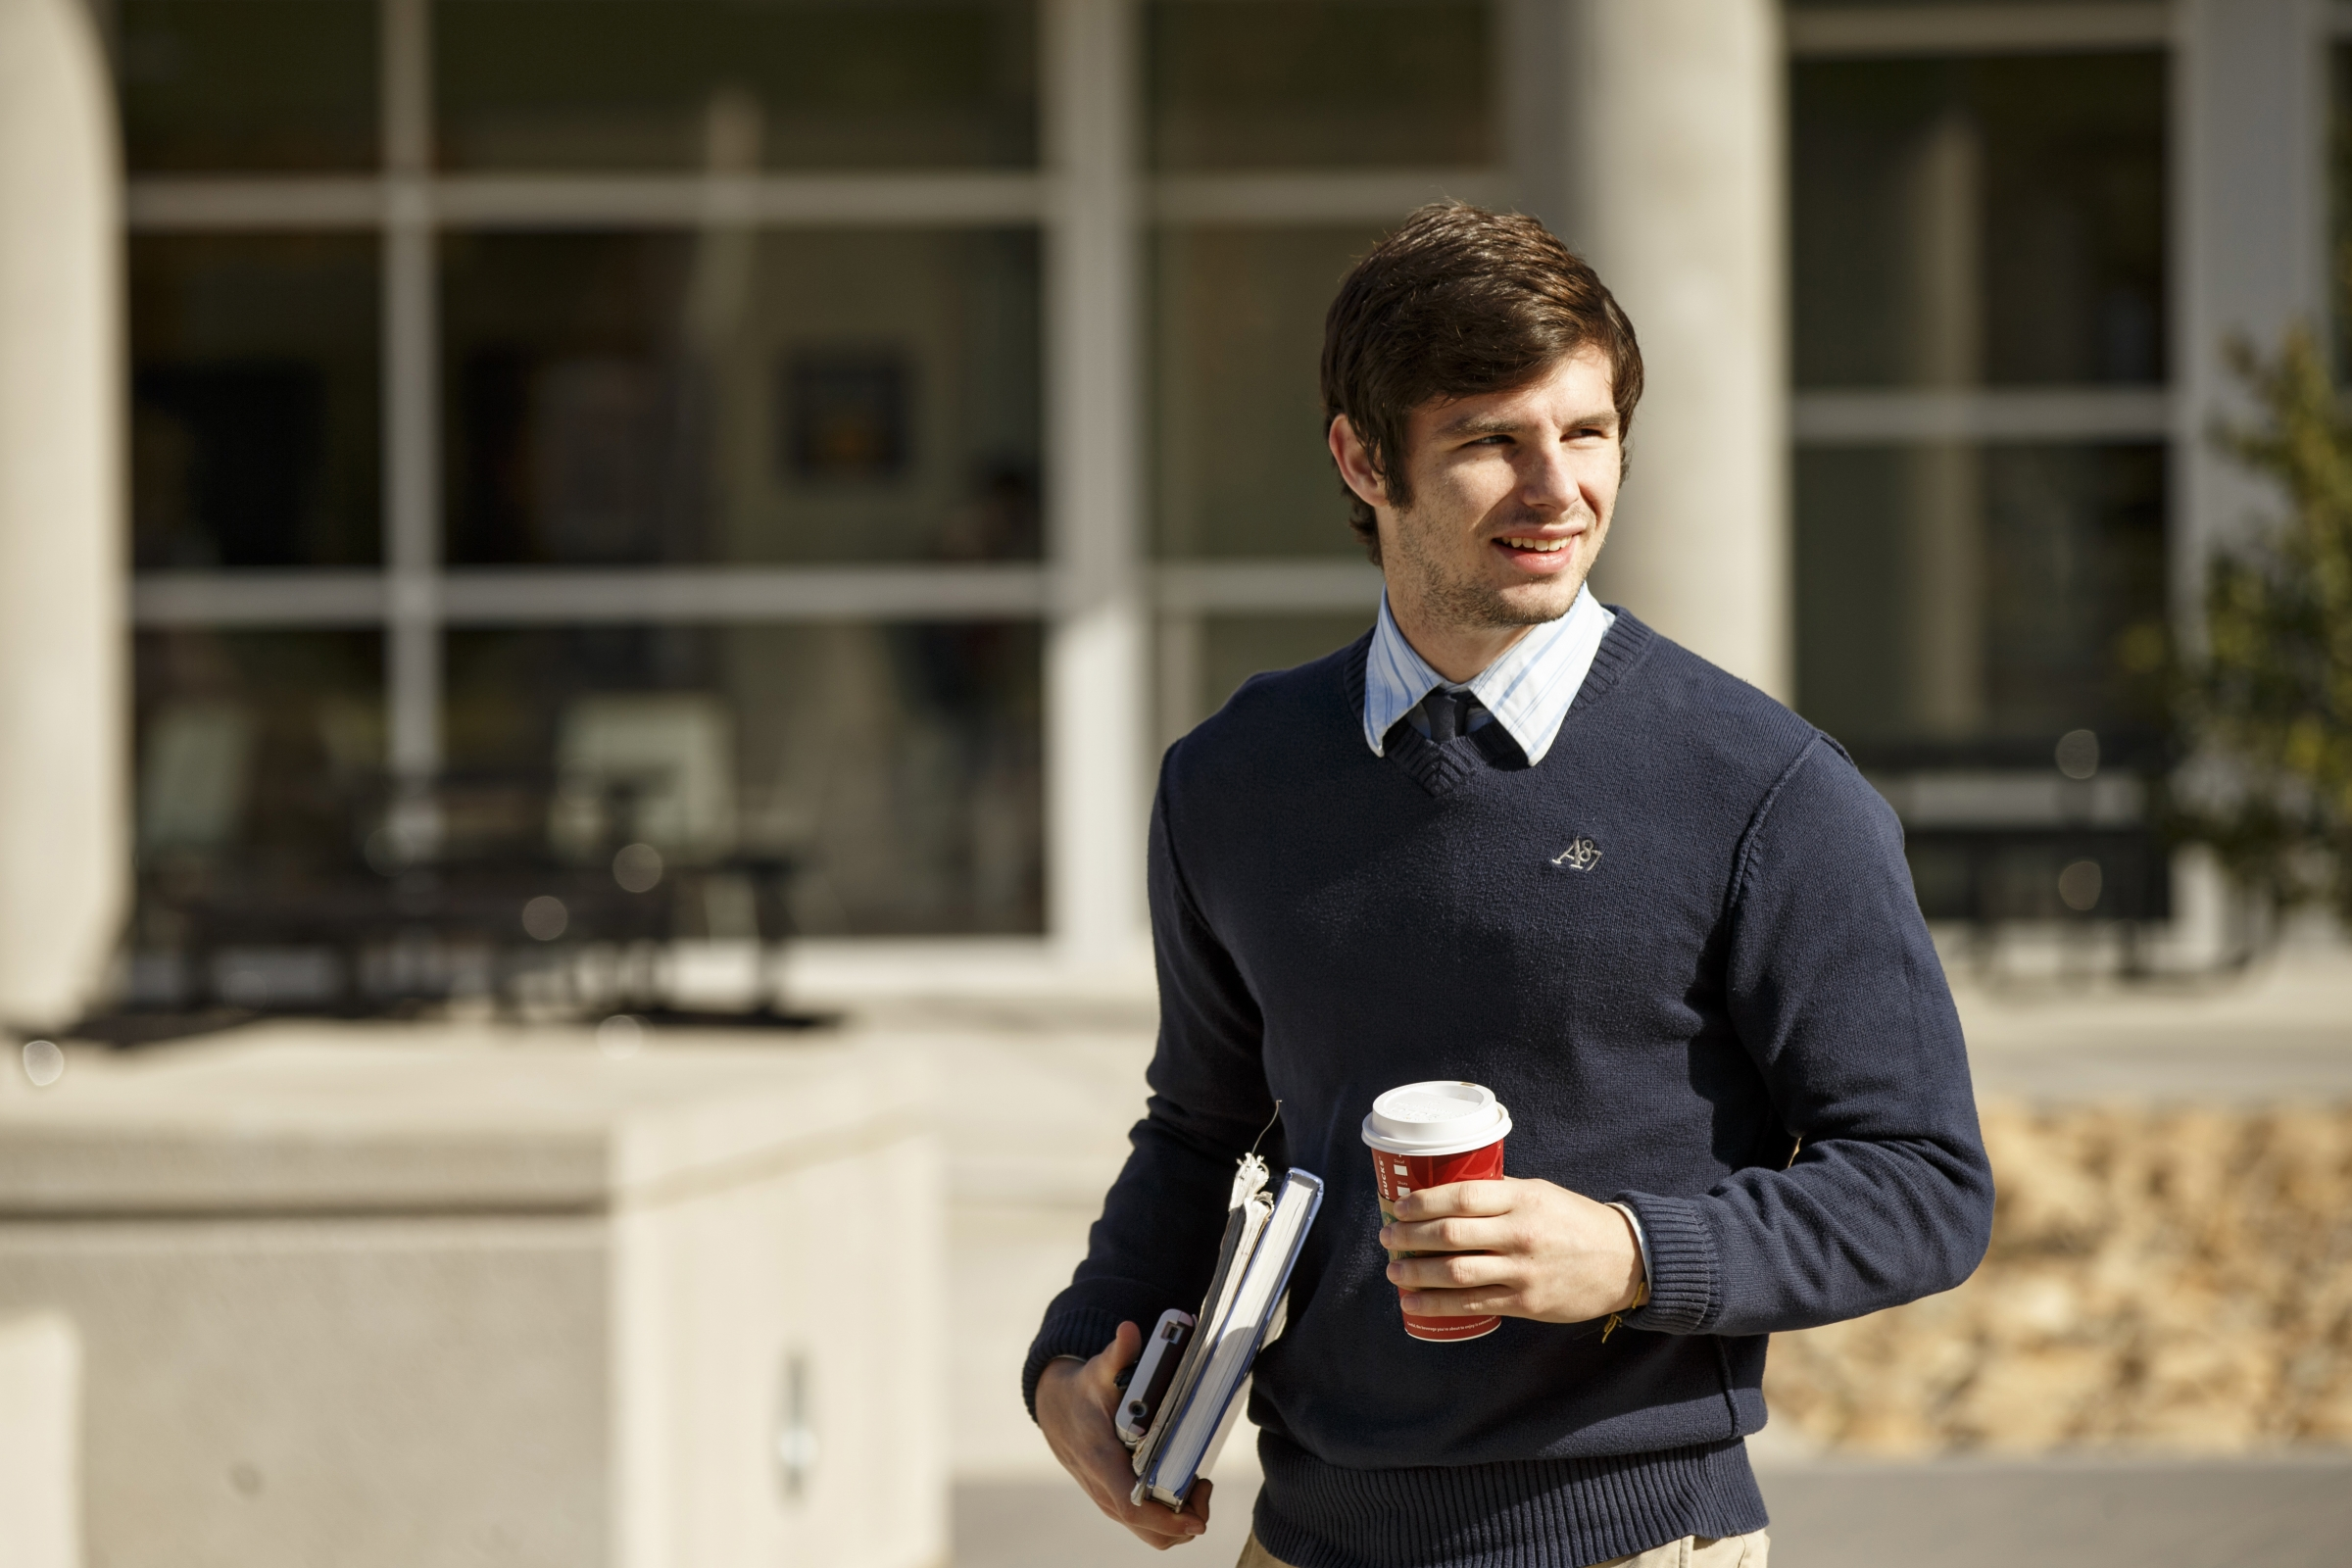 Male student walking with cup of coffee and books in hand